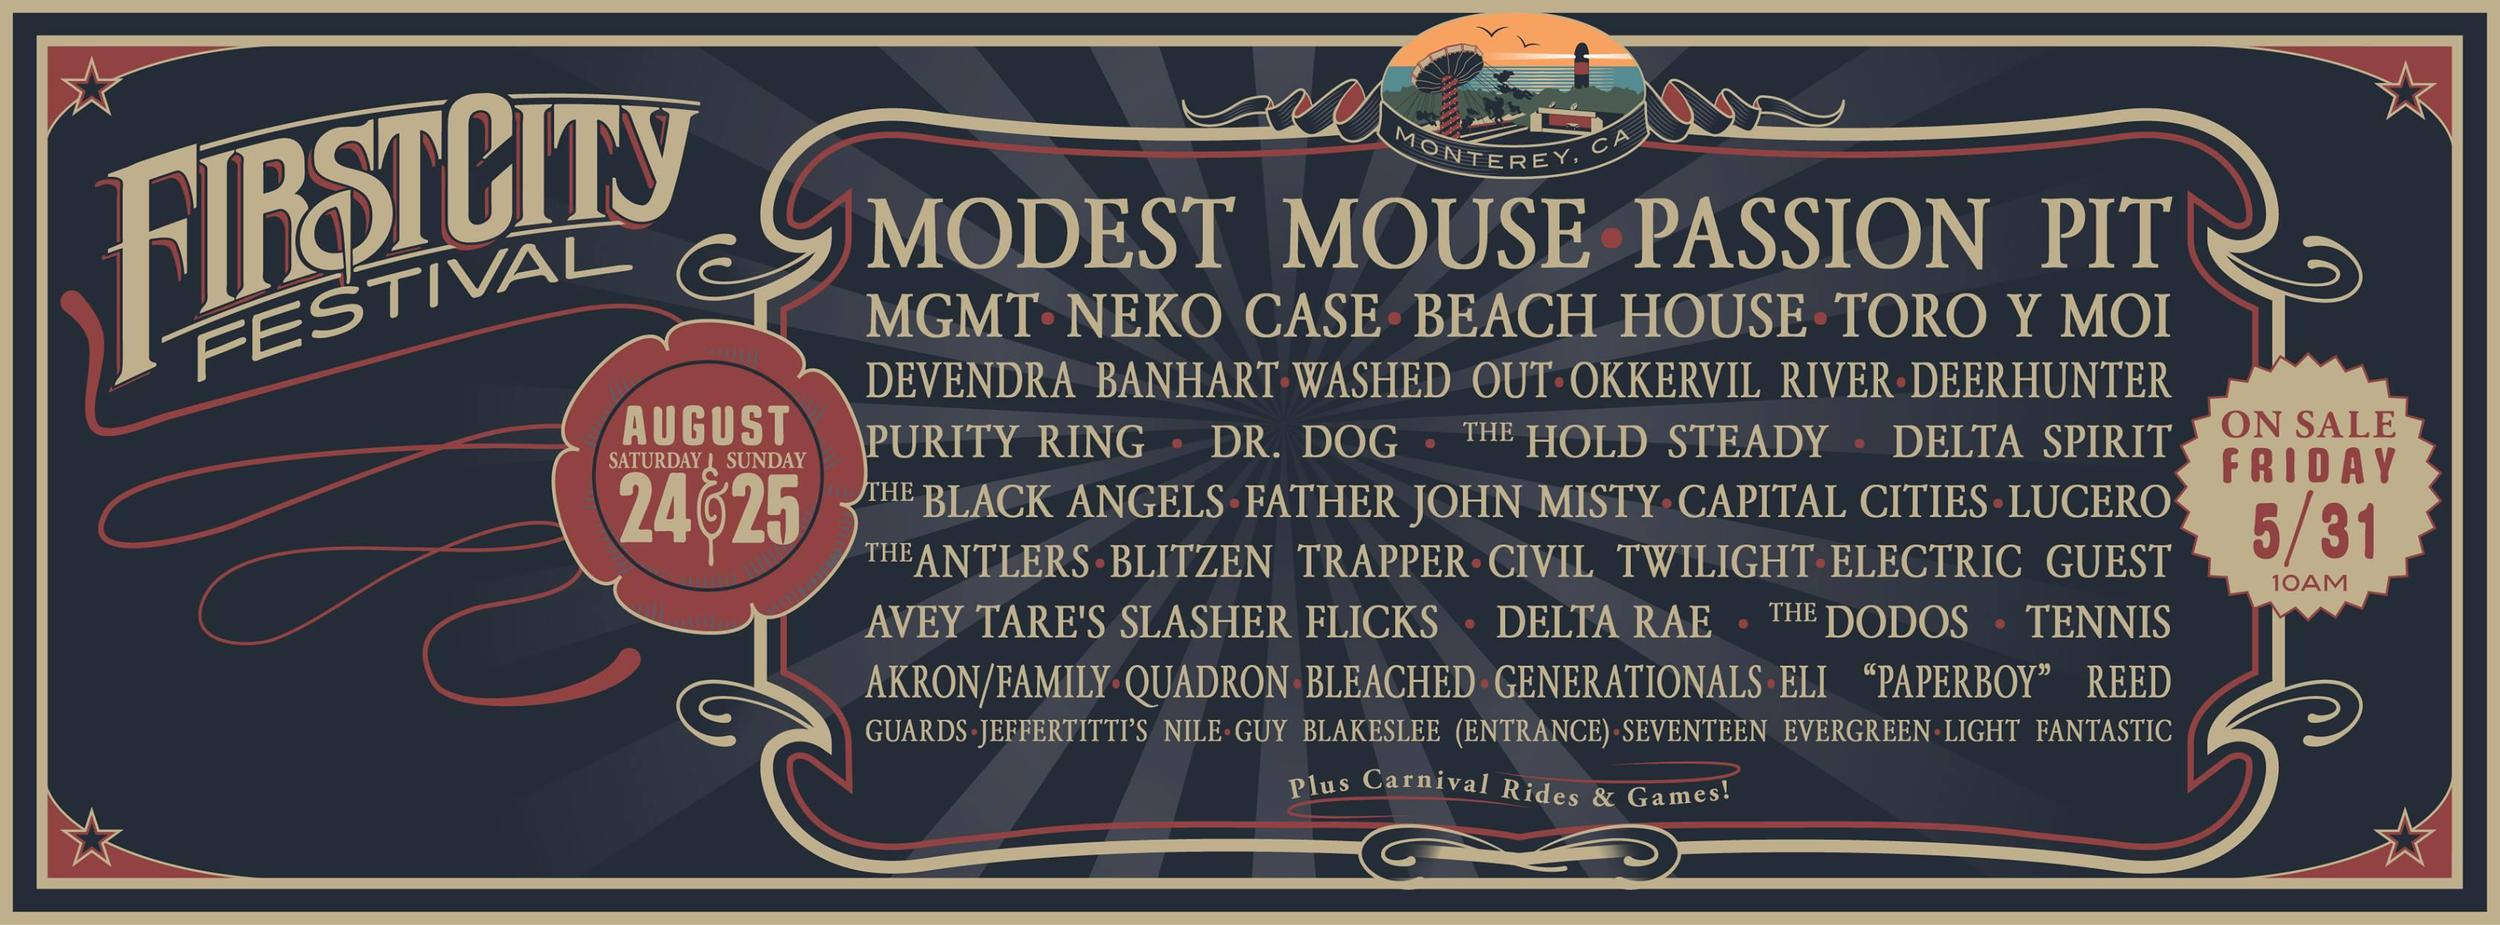 First-City-Festival-Monterey-ca-tickets.jpg